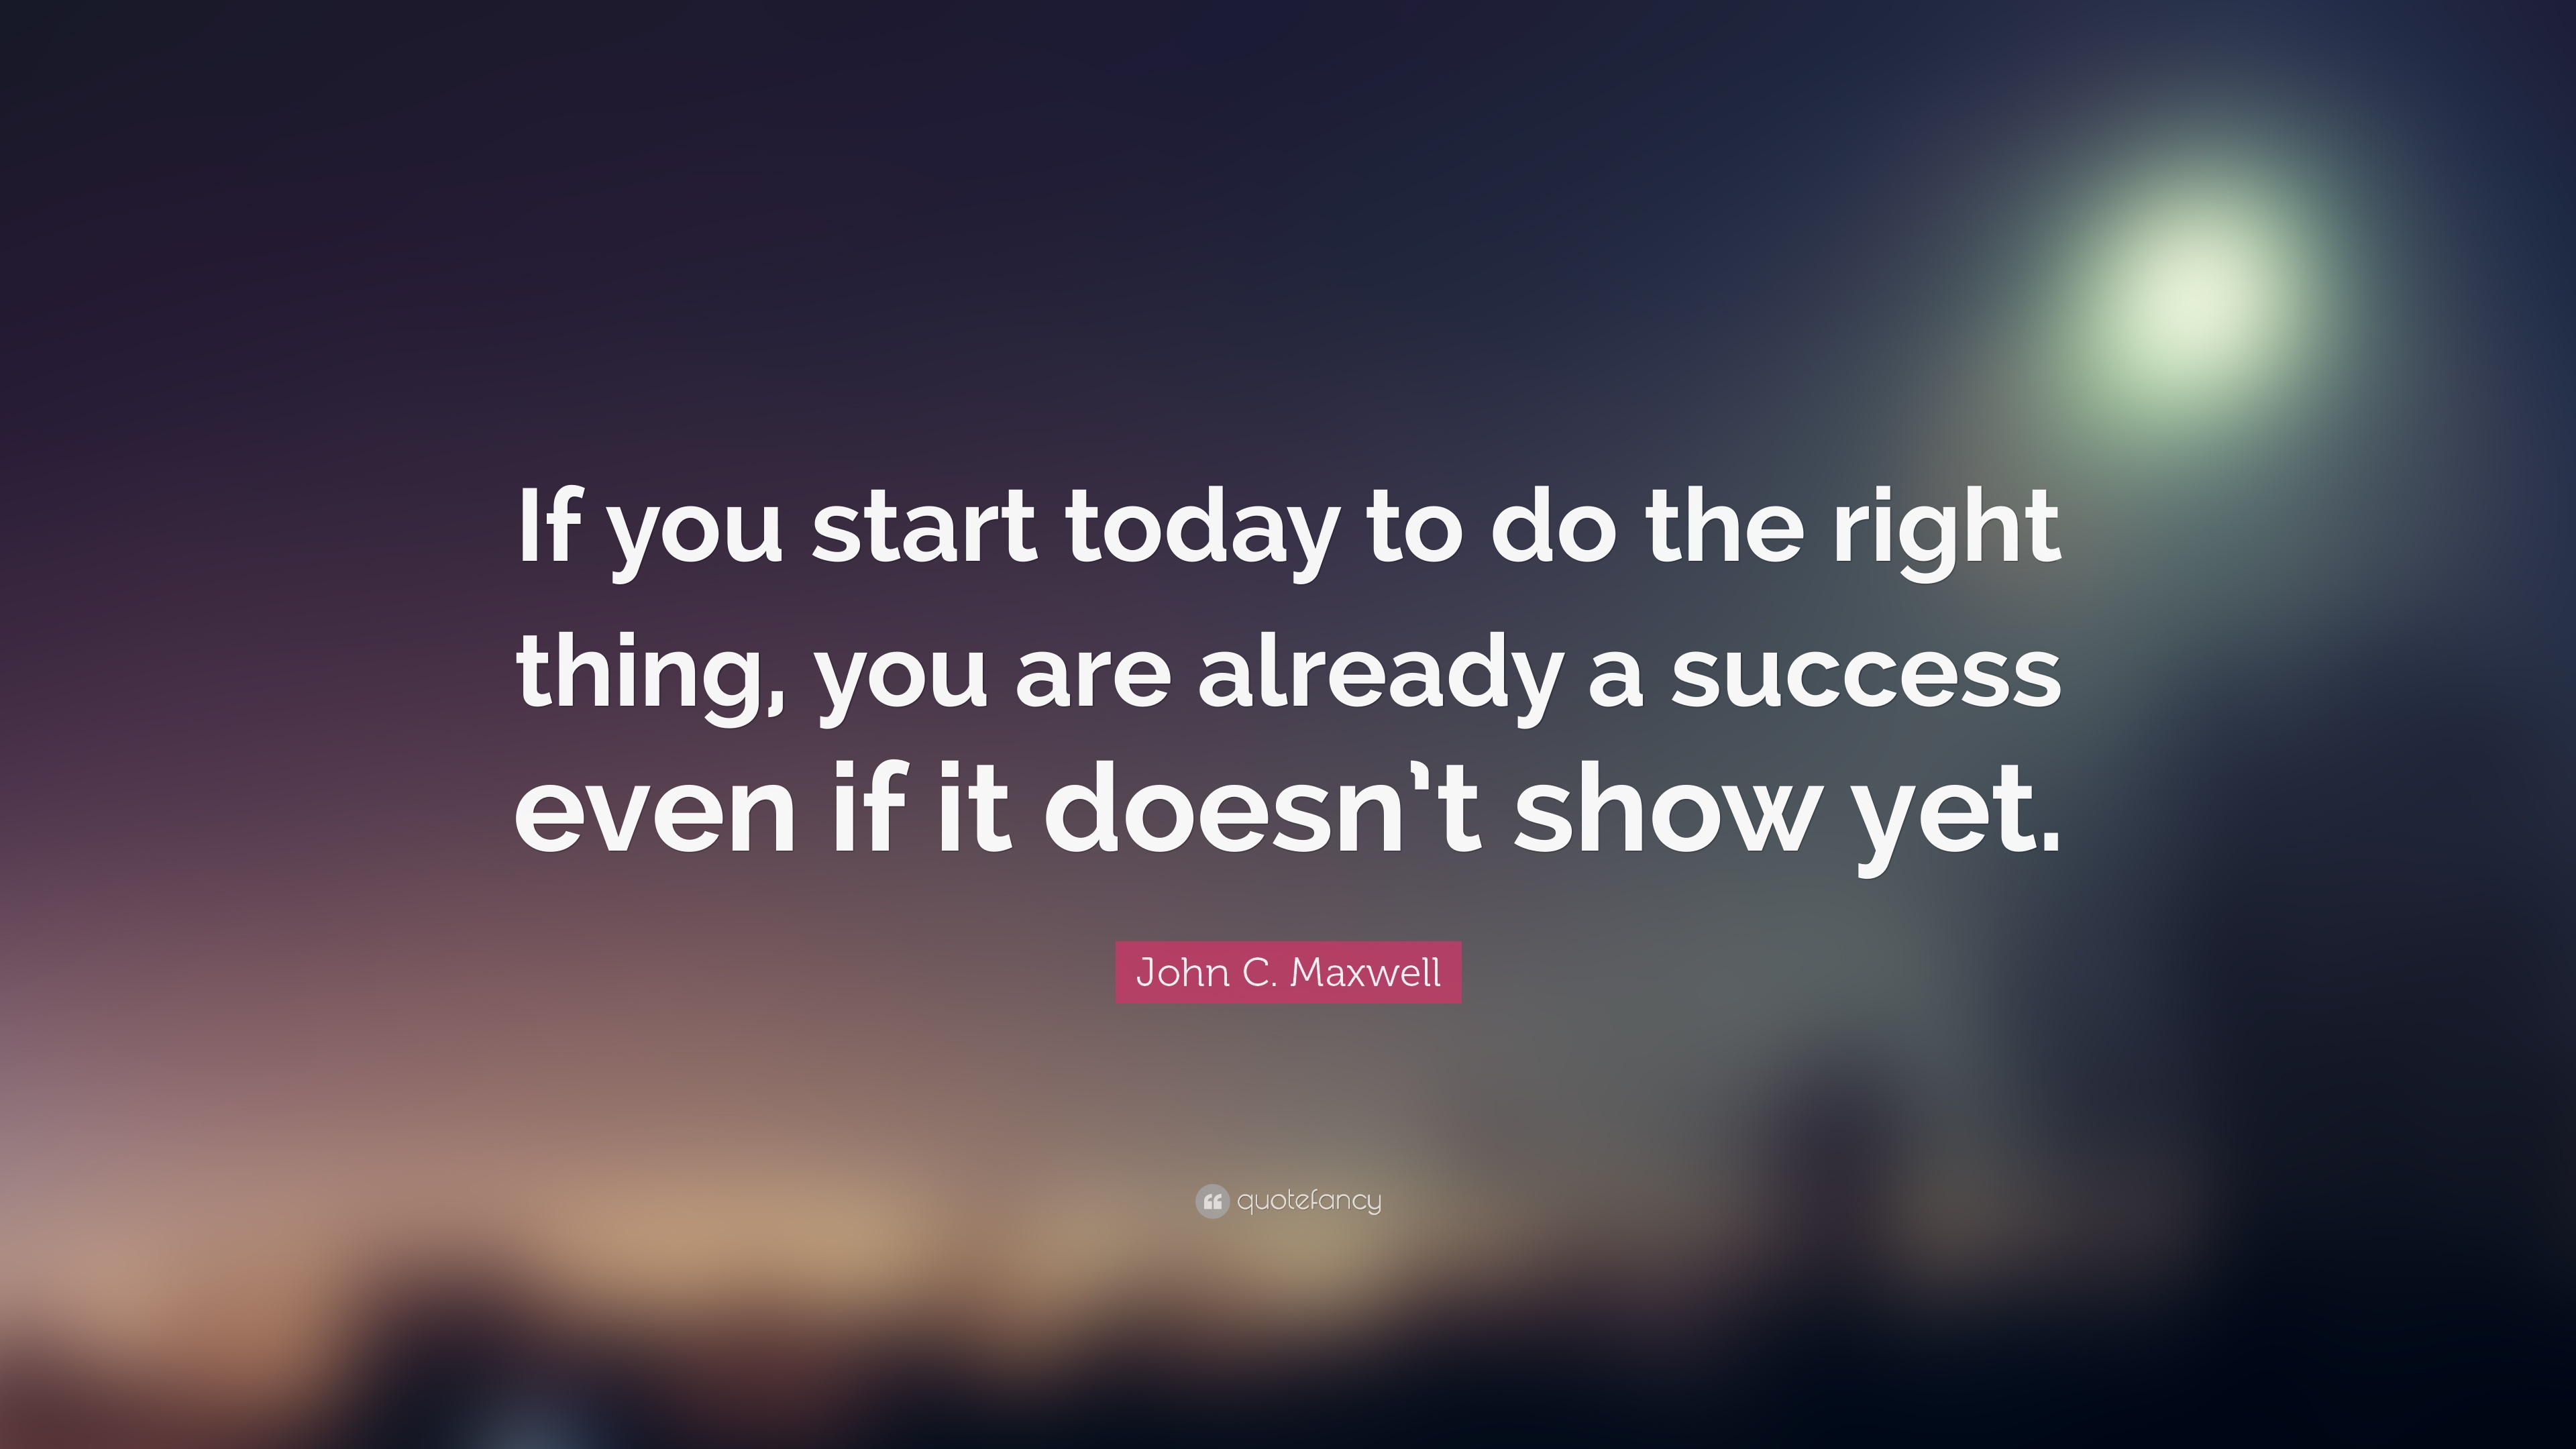 John C Maxwell Quote If you start